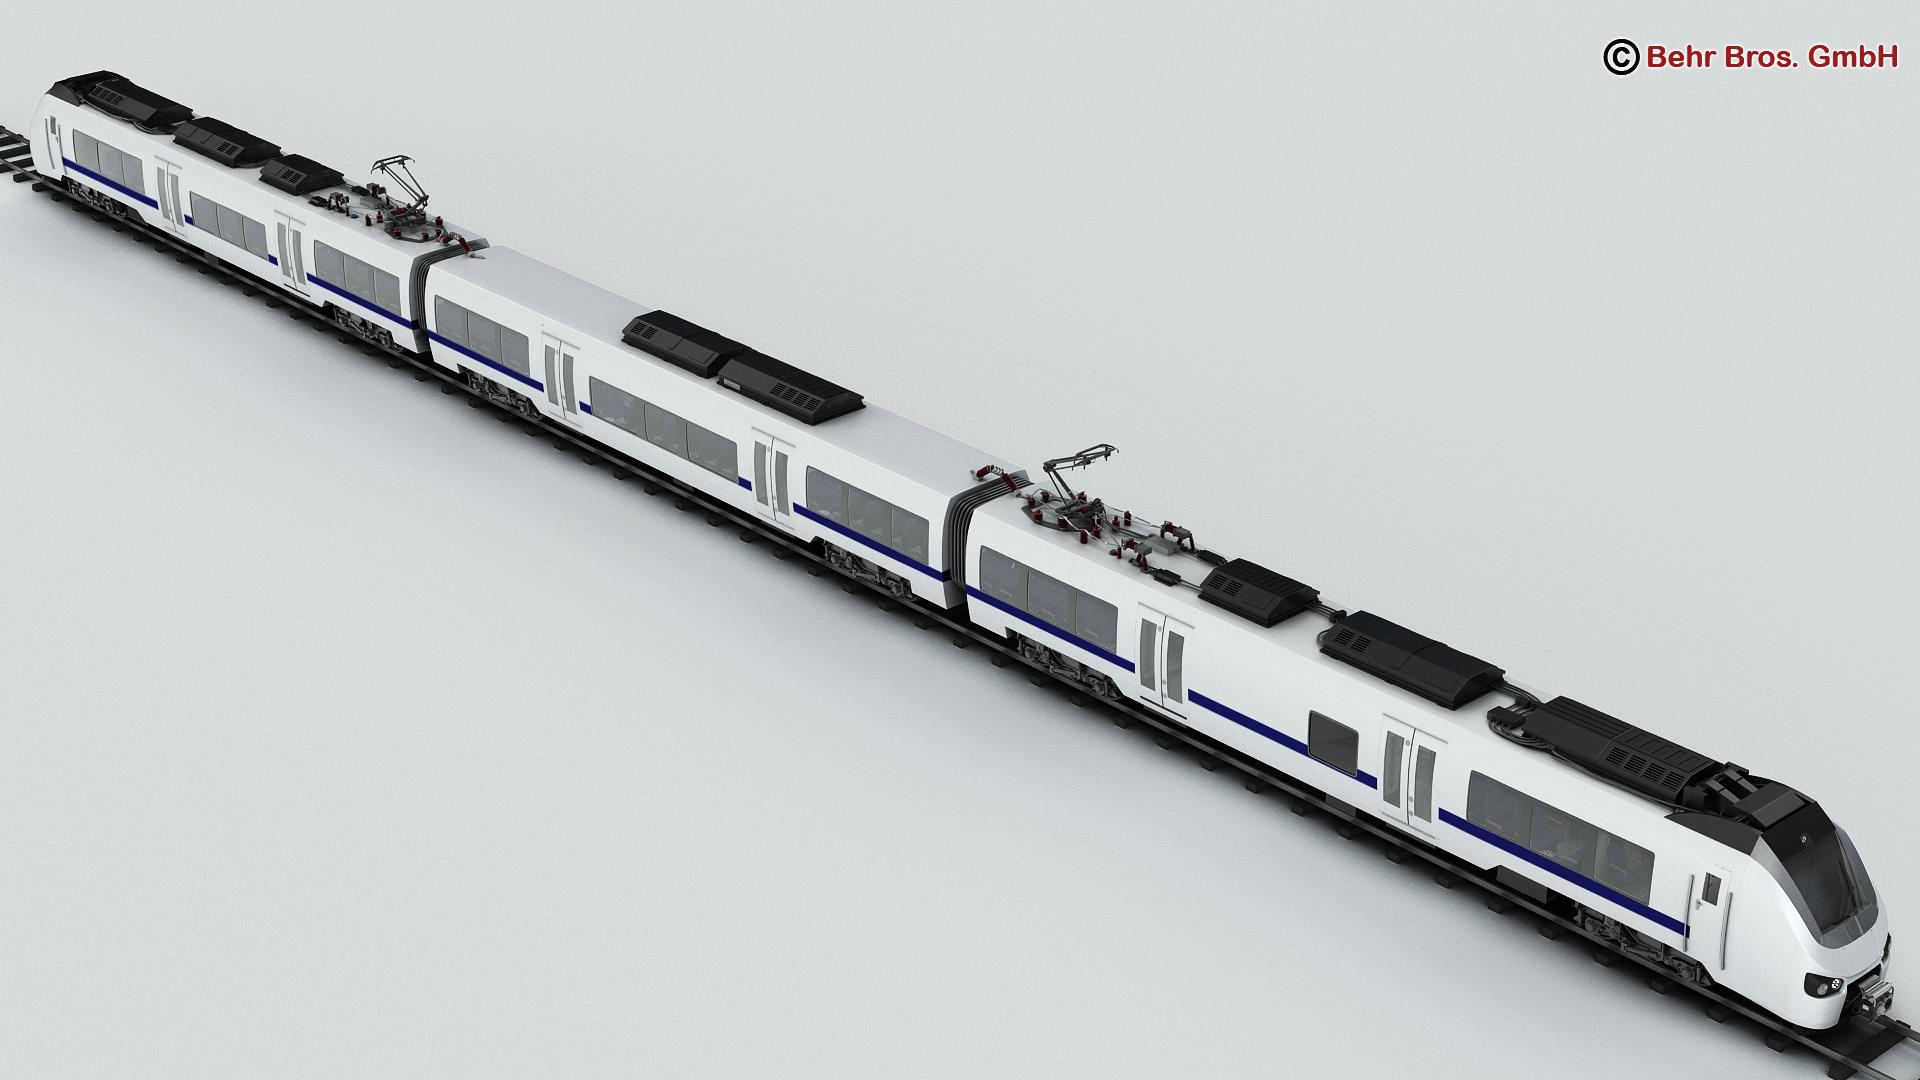 generic commuter train 3d modelo 3ds max fbx c4d ma mb XJUMX